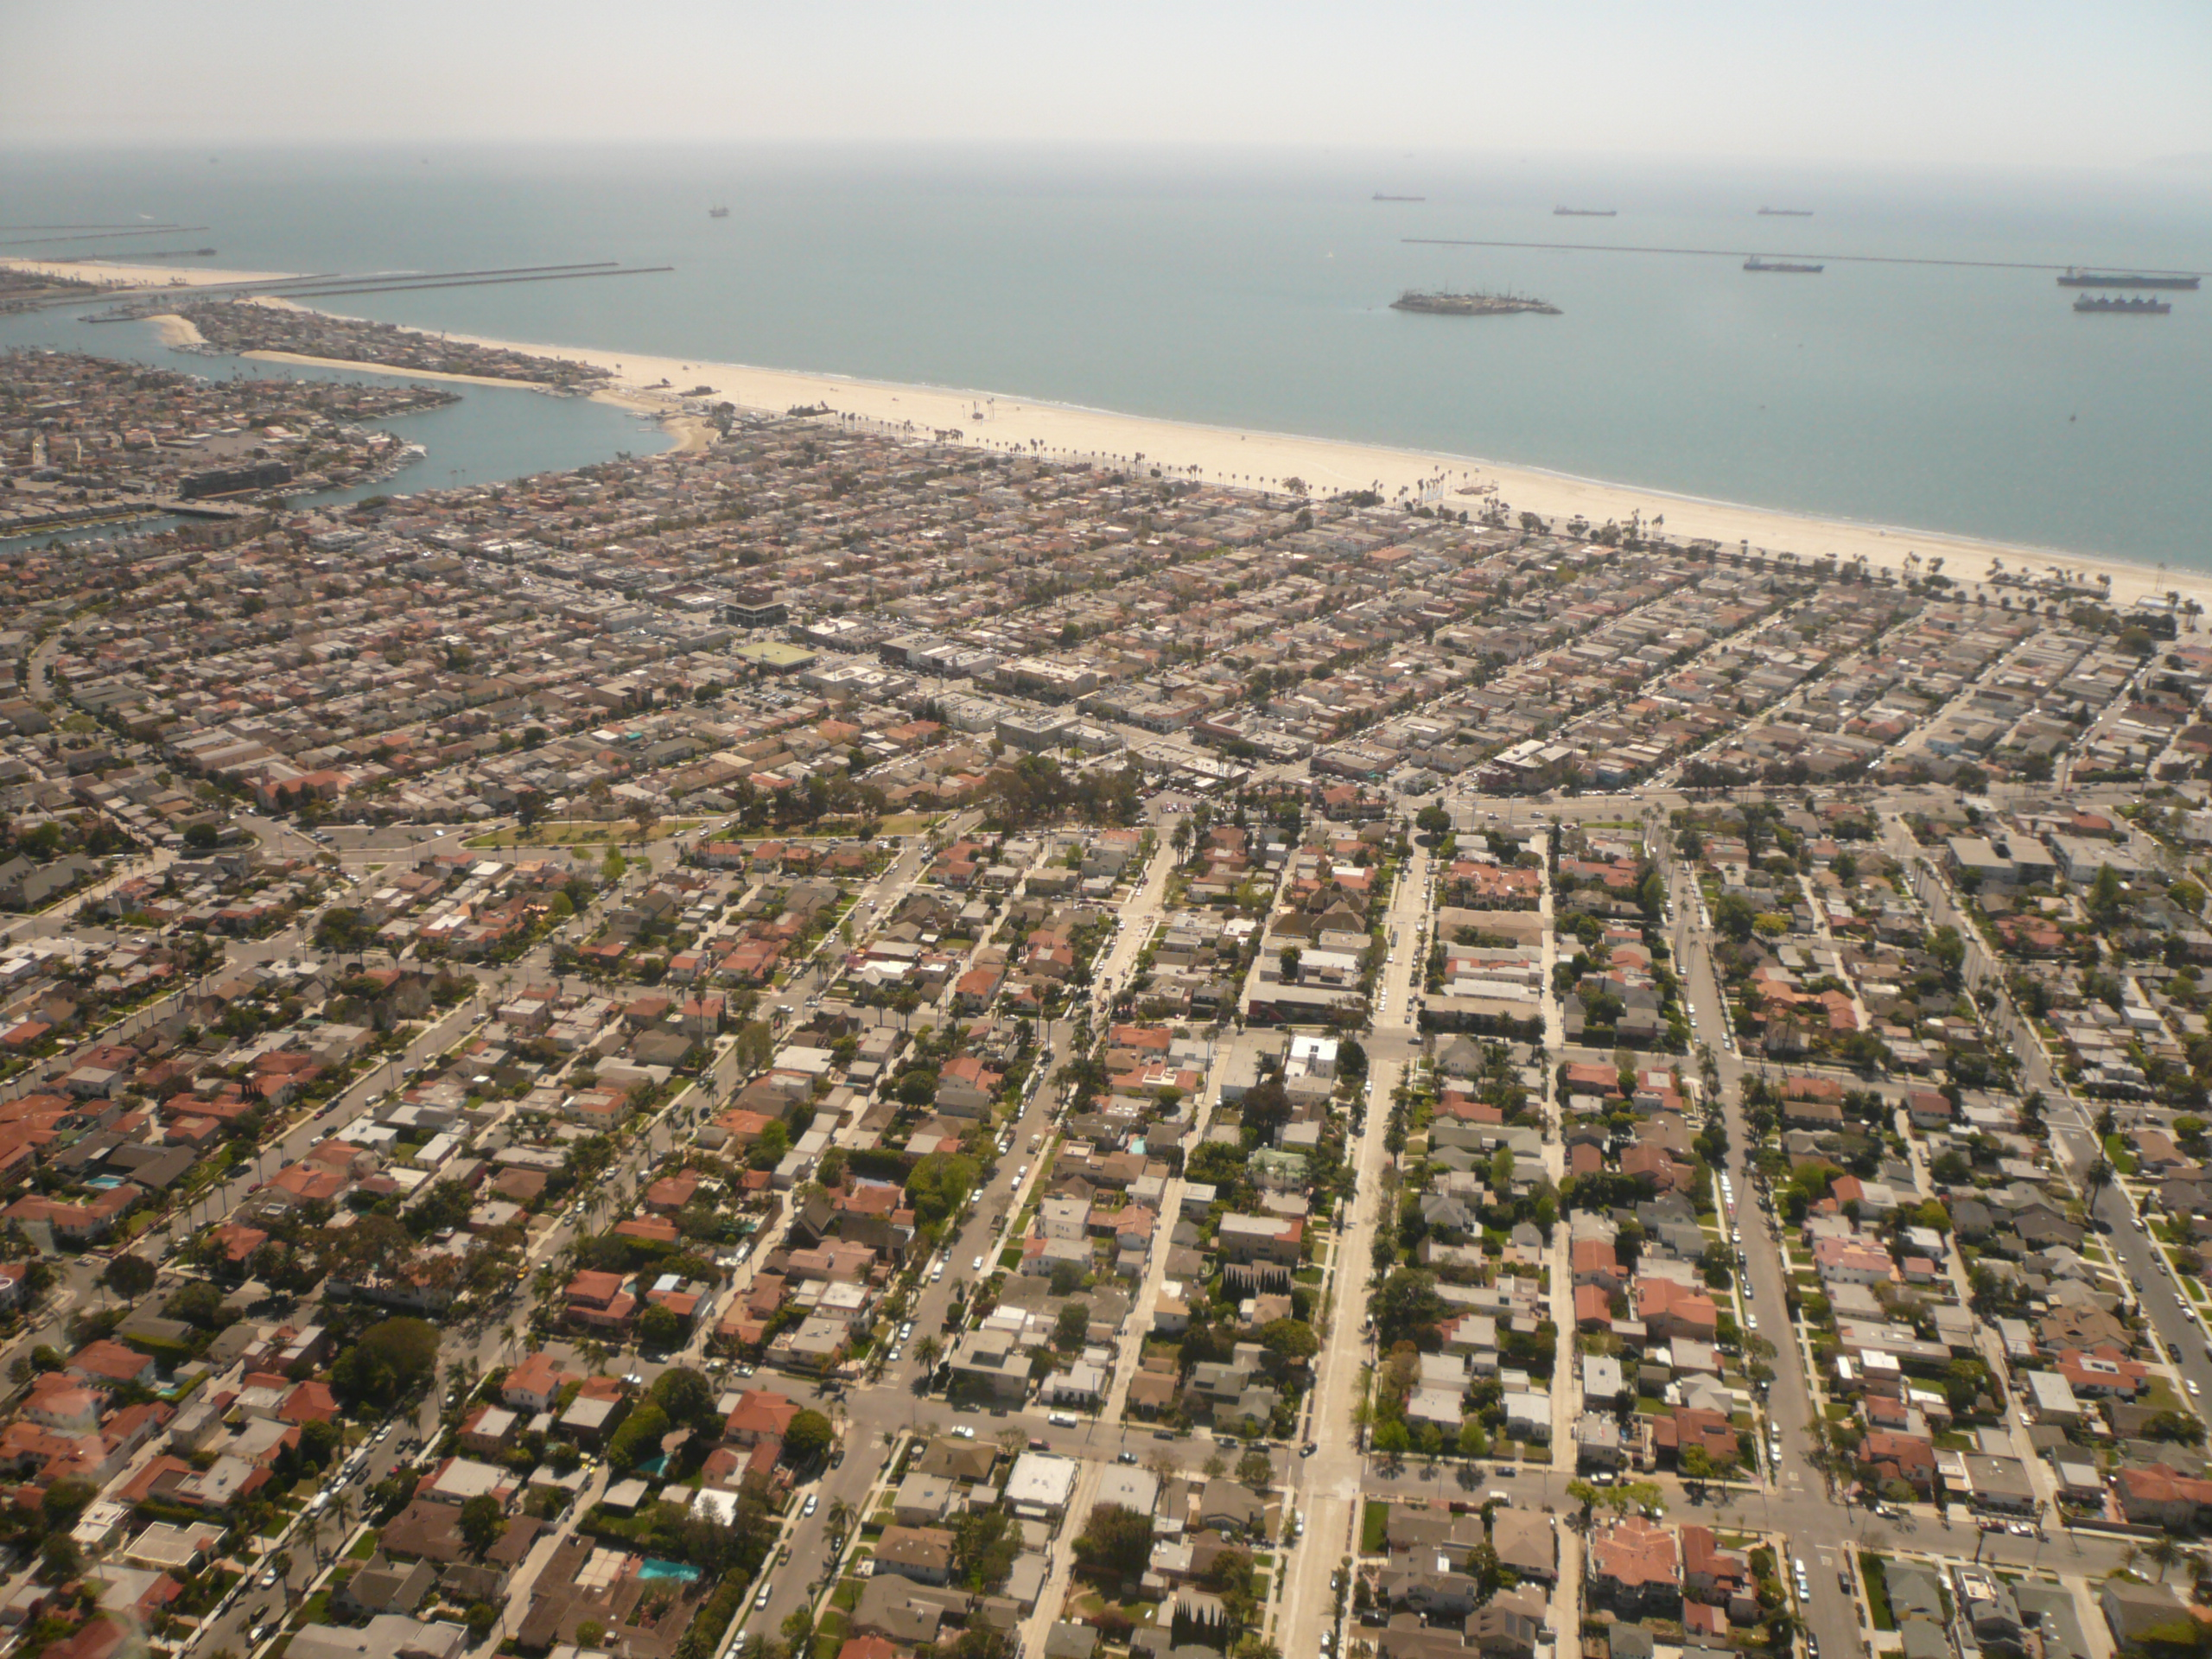 Belmont_Shore_and_Belmont_Heights_in_Long_Beach_California